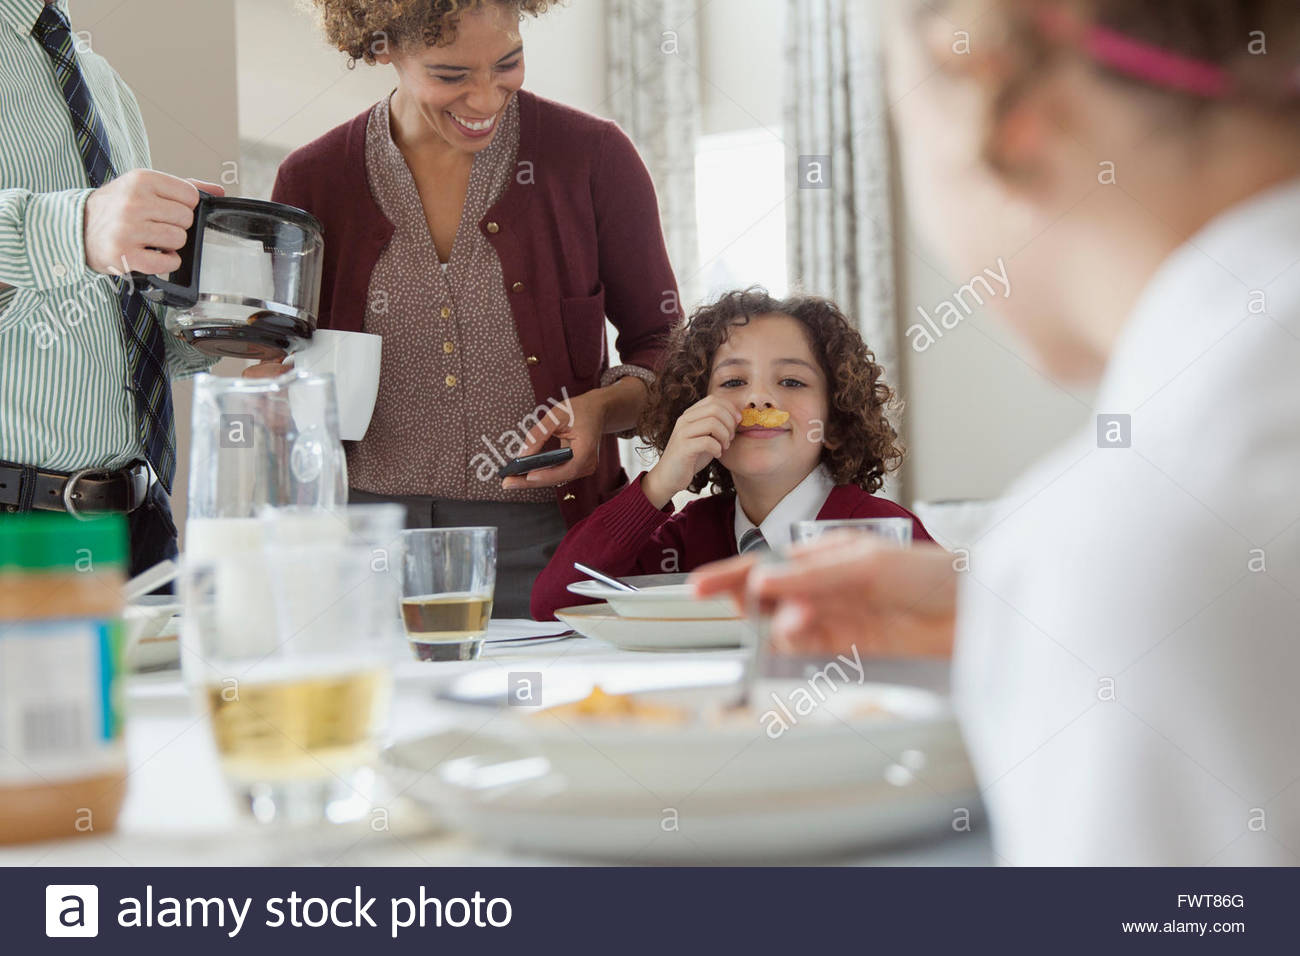 Daughter making a mustache out of cereal flakes at breakfast. - Stock Image